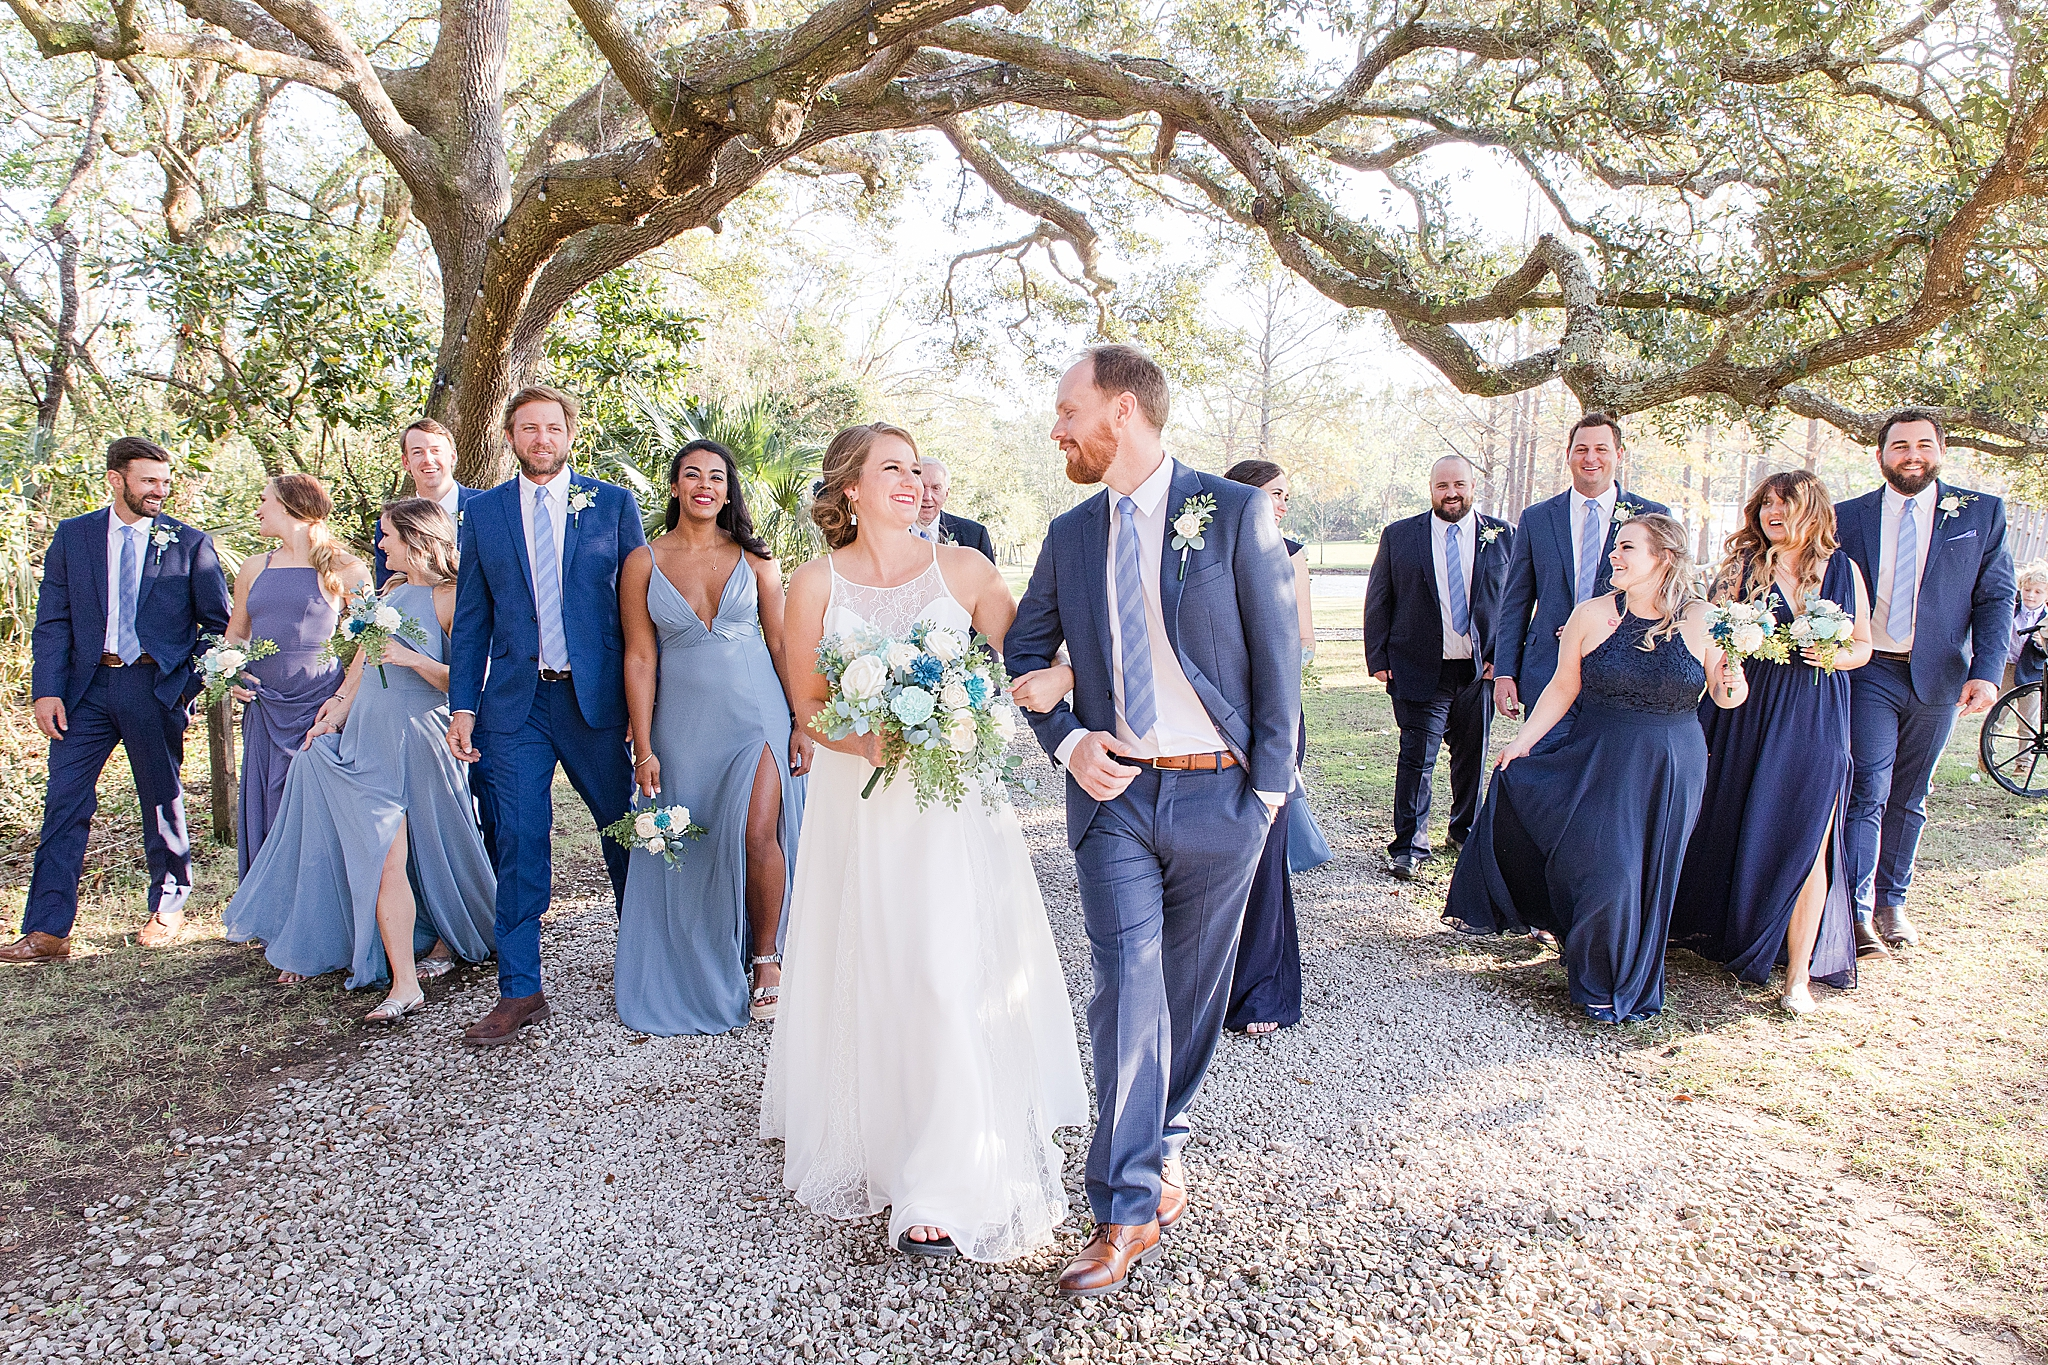 wedding party walks with bride and groom after Burkhardt Pond wedding